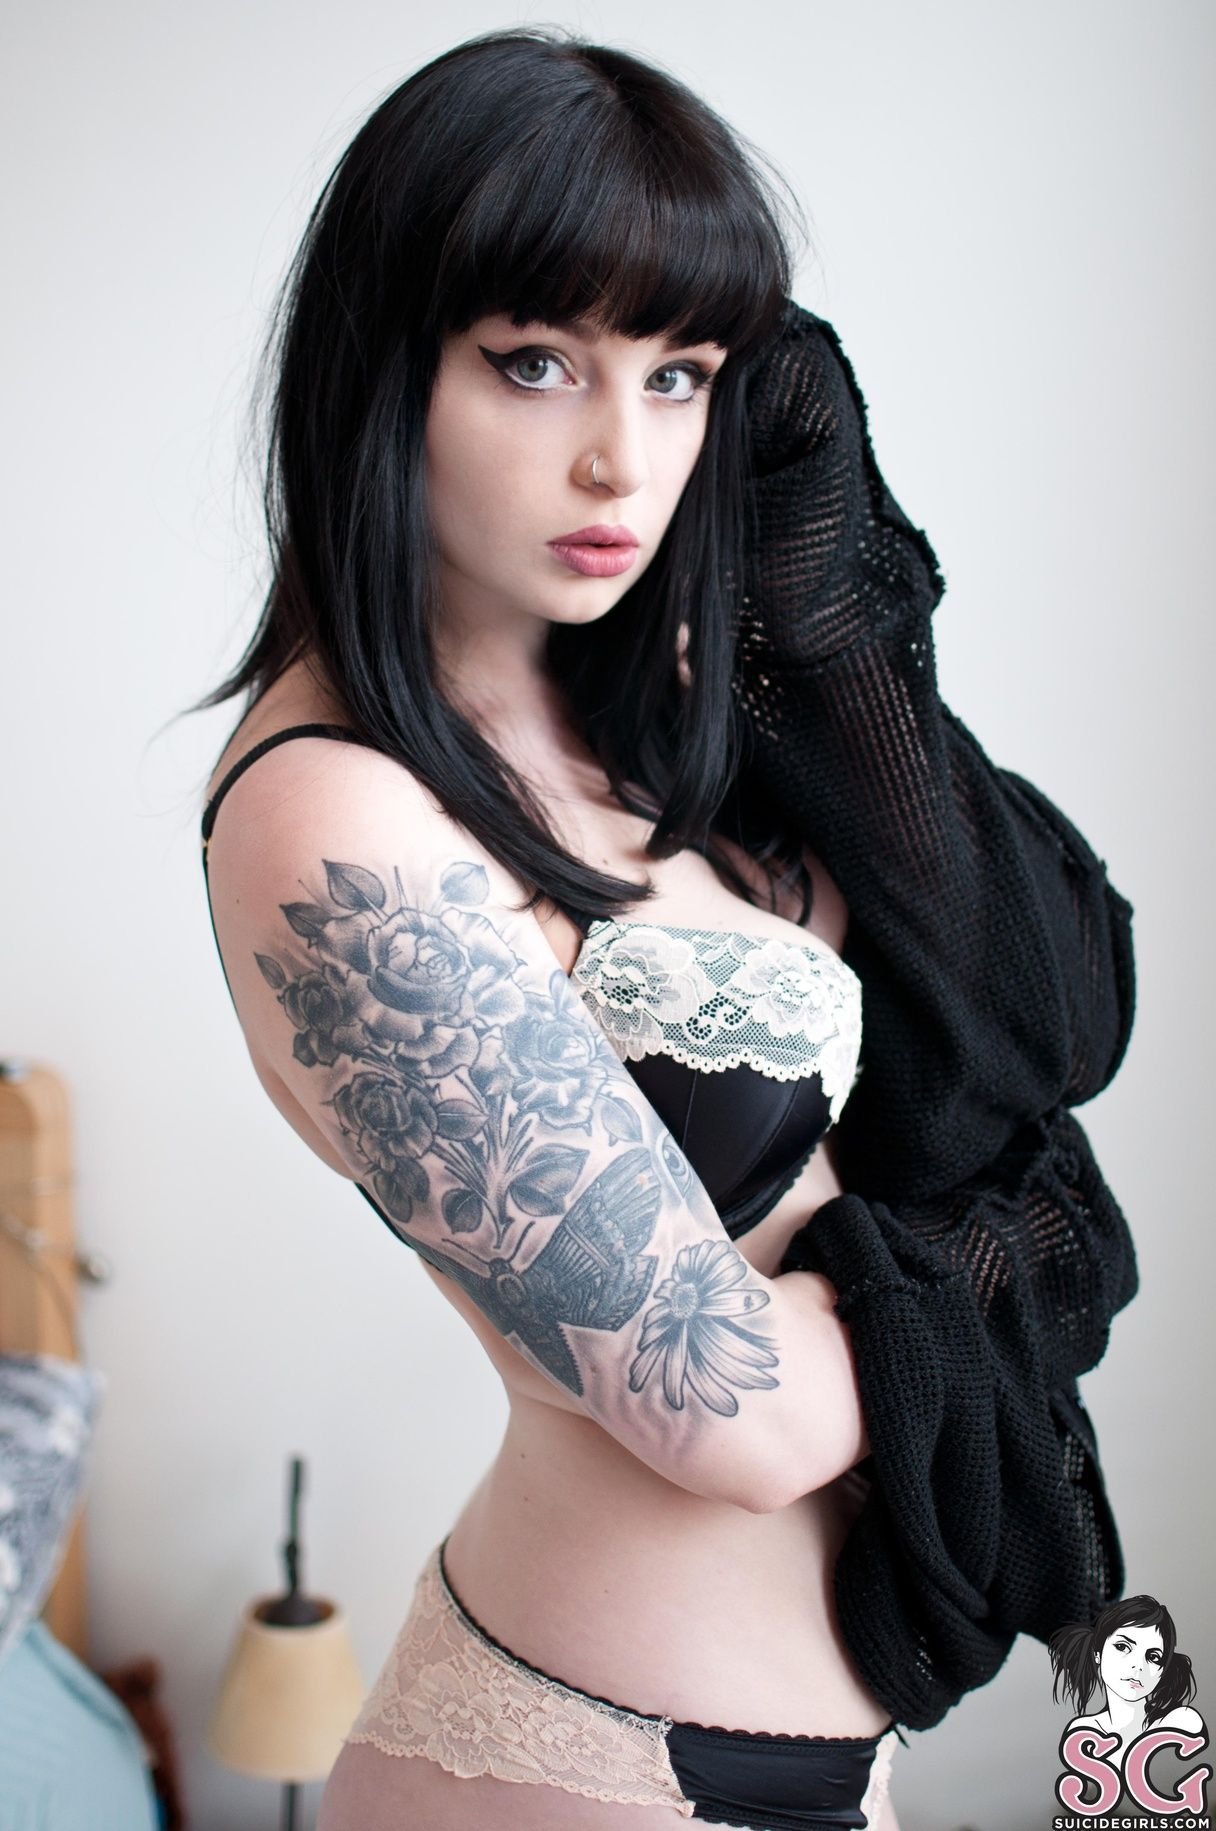 Geegee Suicide  Girls  Pinterest  Tattoo, Tatoo And -4159